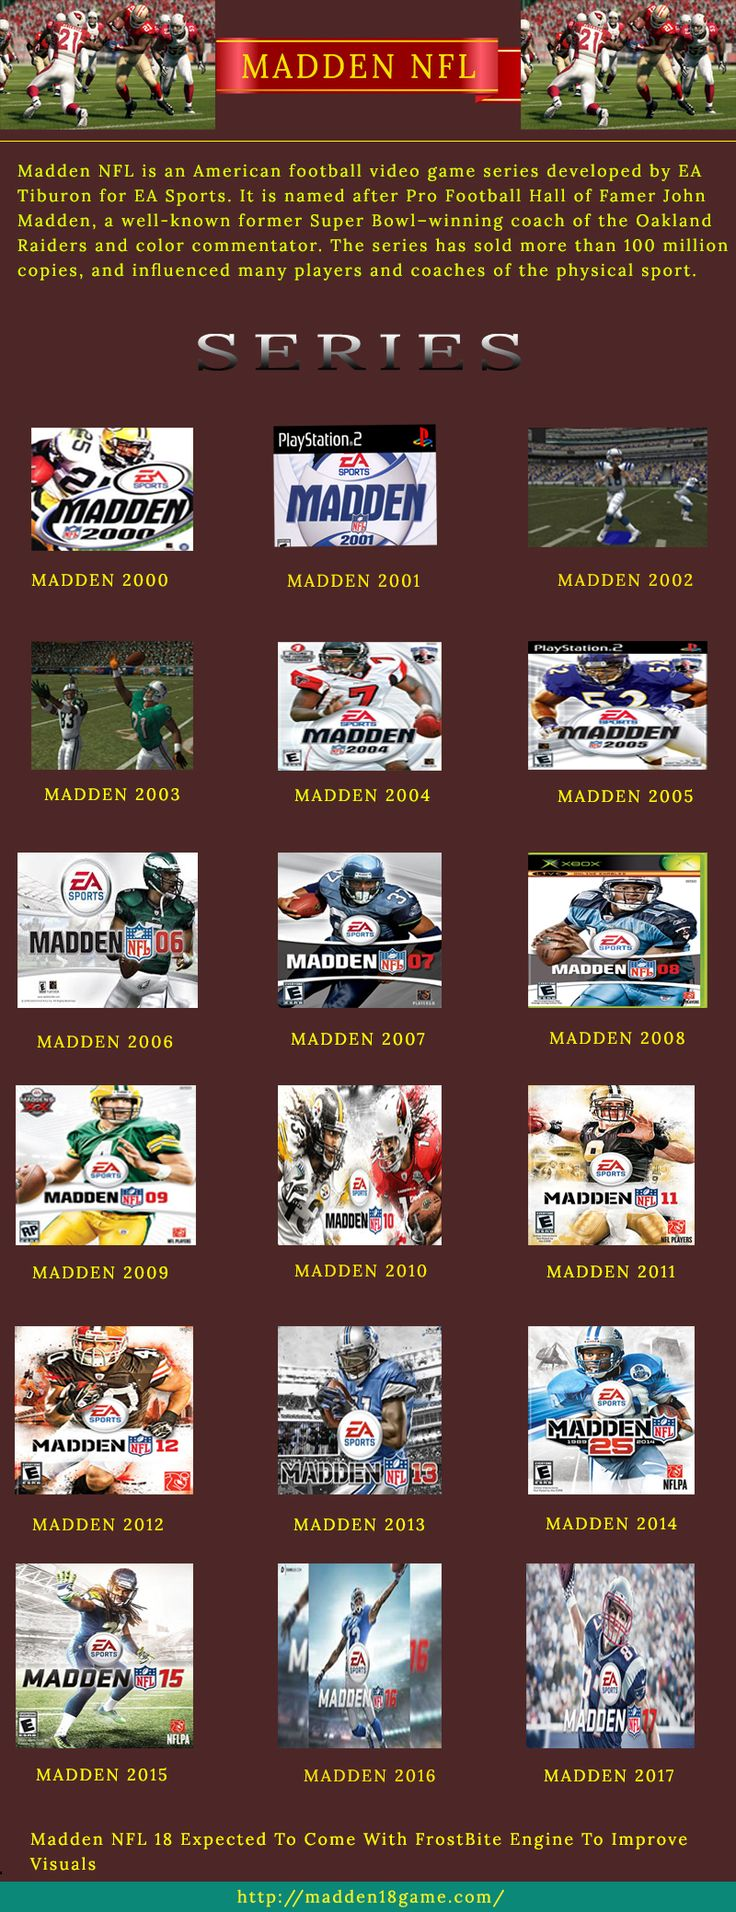 MADDEN NFL is a very famous and most playing Video Game. This is a American footbal video game series developed and published by EA Sports. EA sports launched new game every year in MADDEN NFL game series. The Upcoming game in Madden NFL game series is MADDEN 18. This game Would be released in the end of next year.